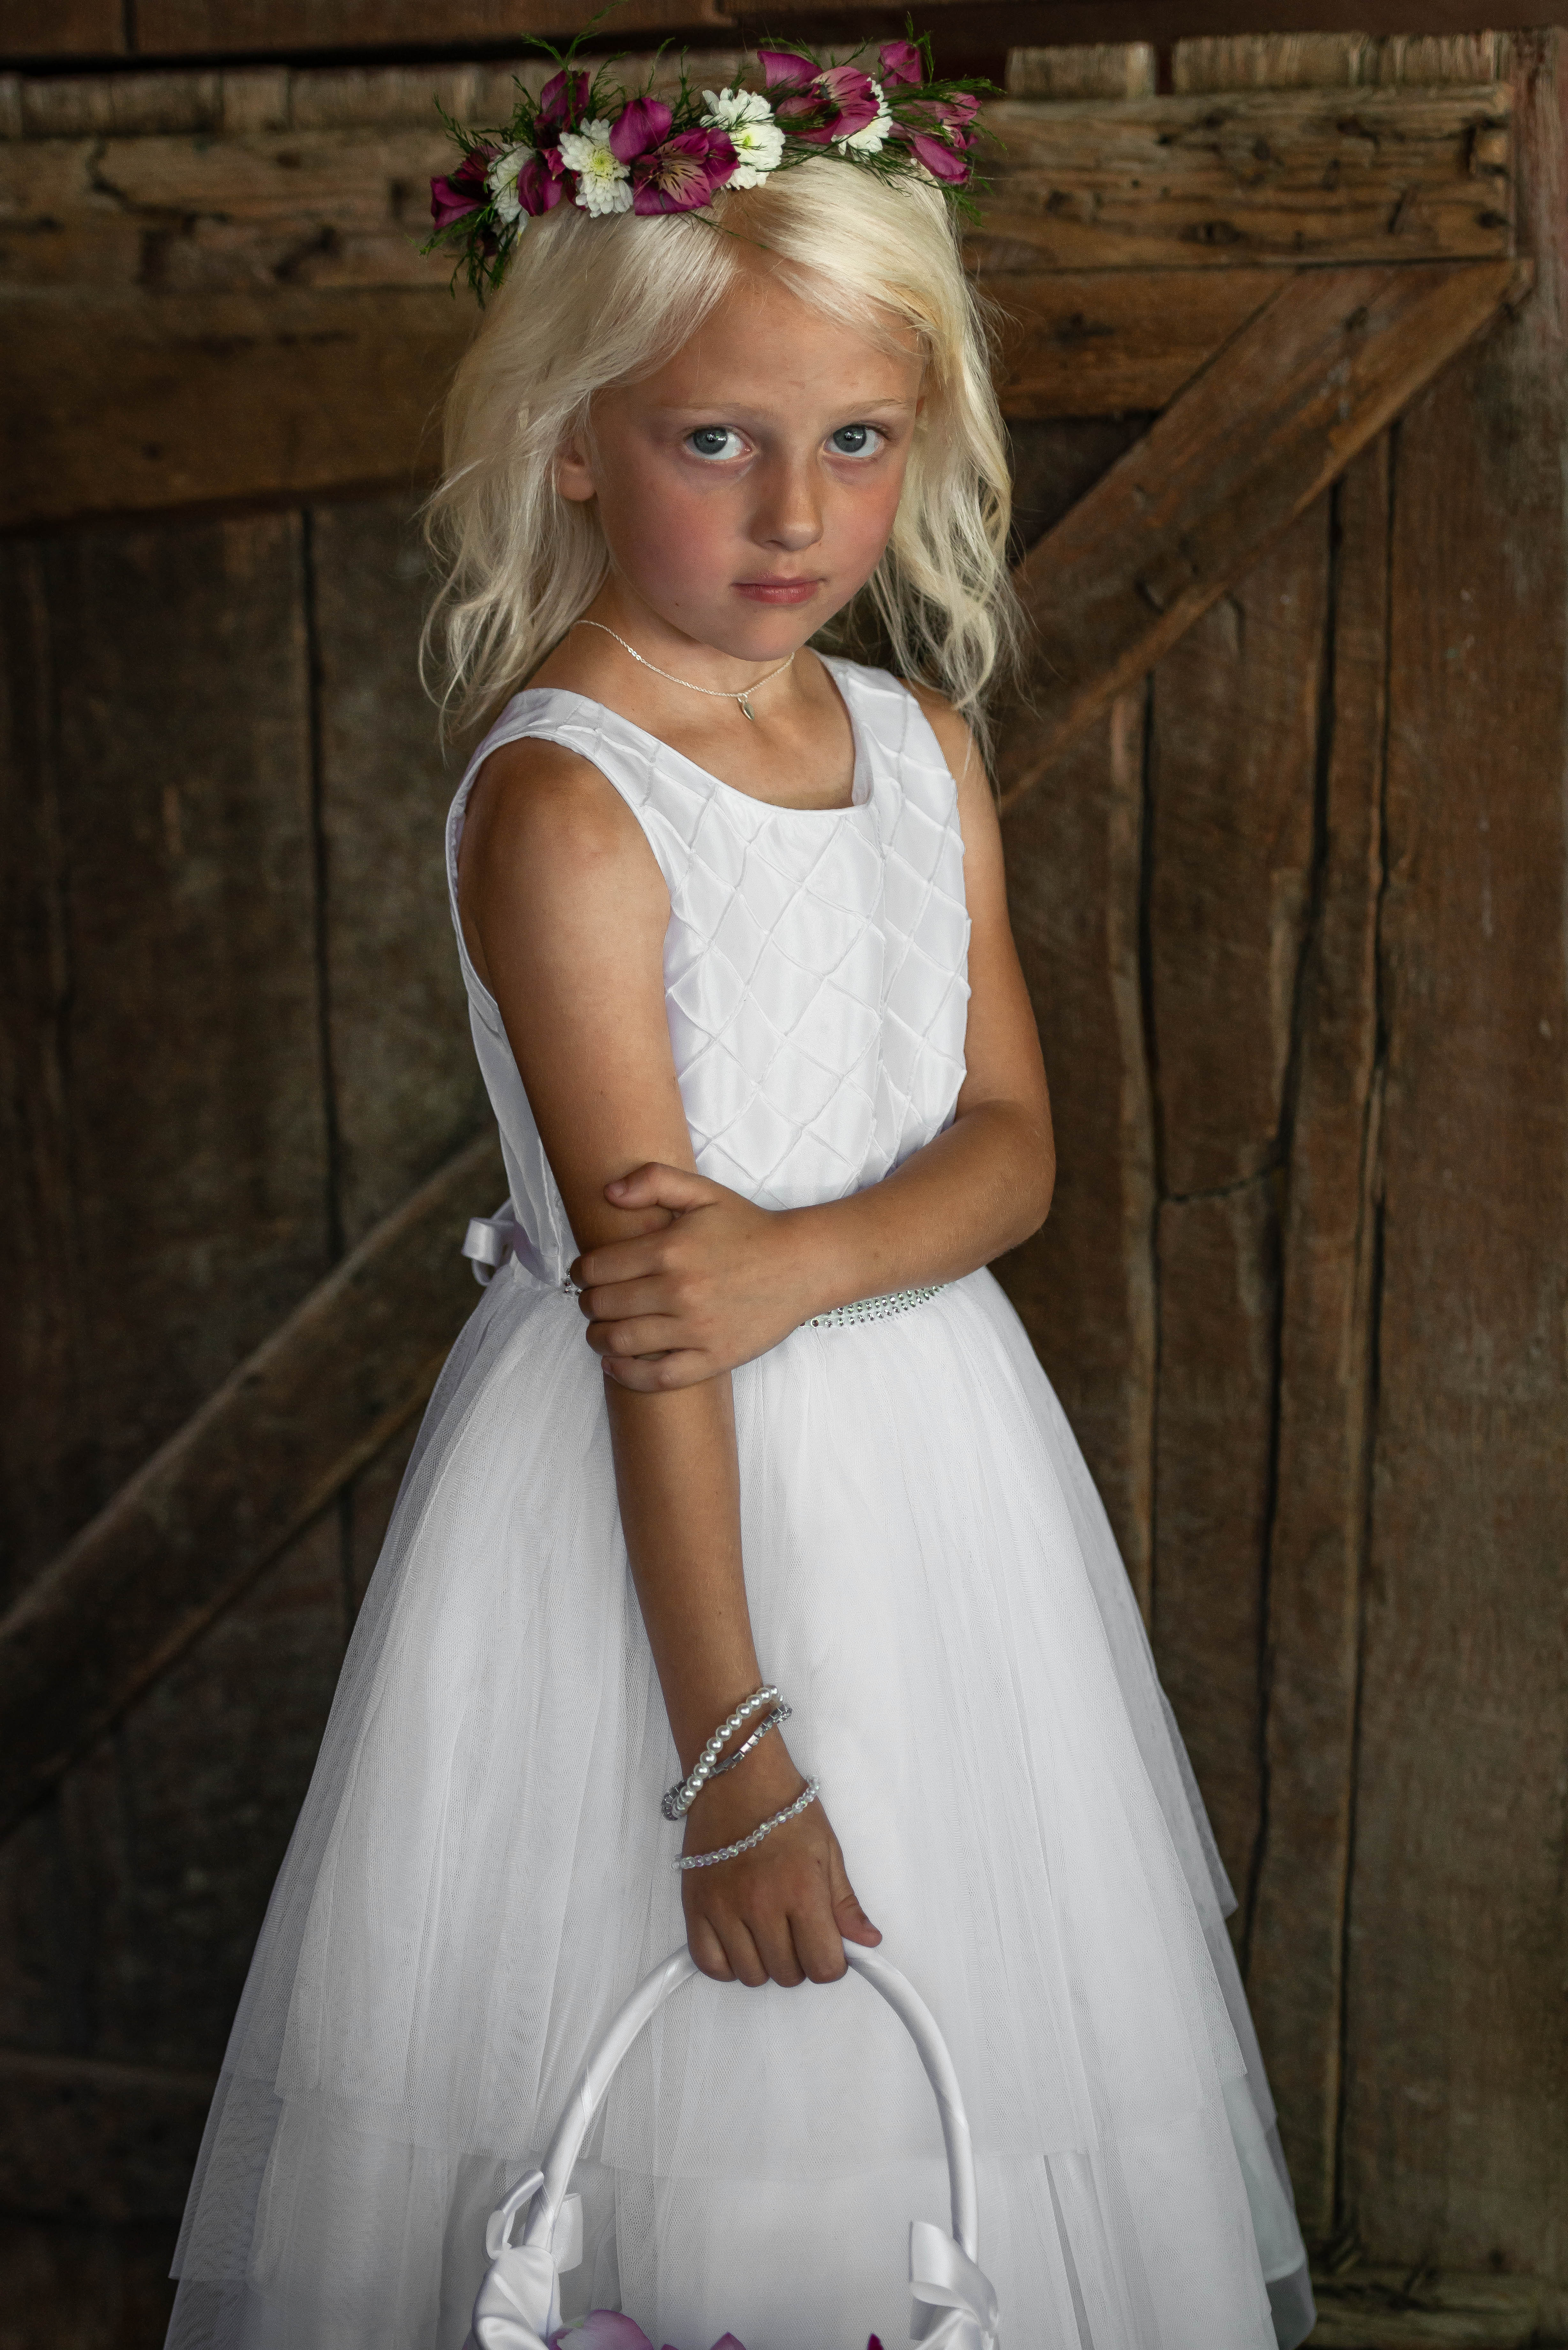 Little bridesmaid flower girl at Filhauer Lakehouse